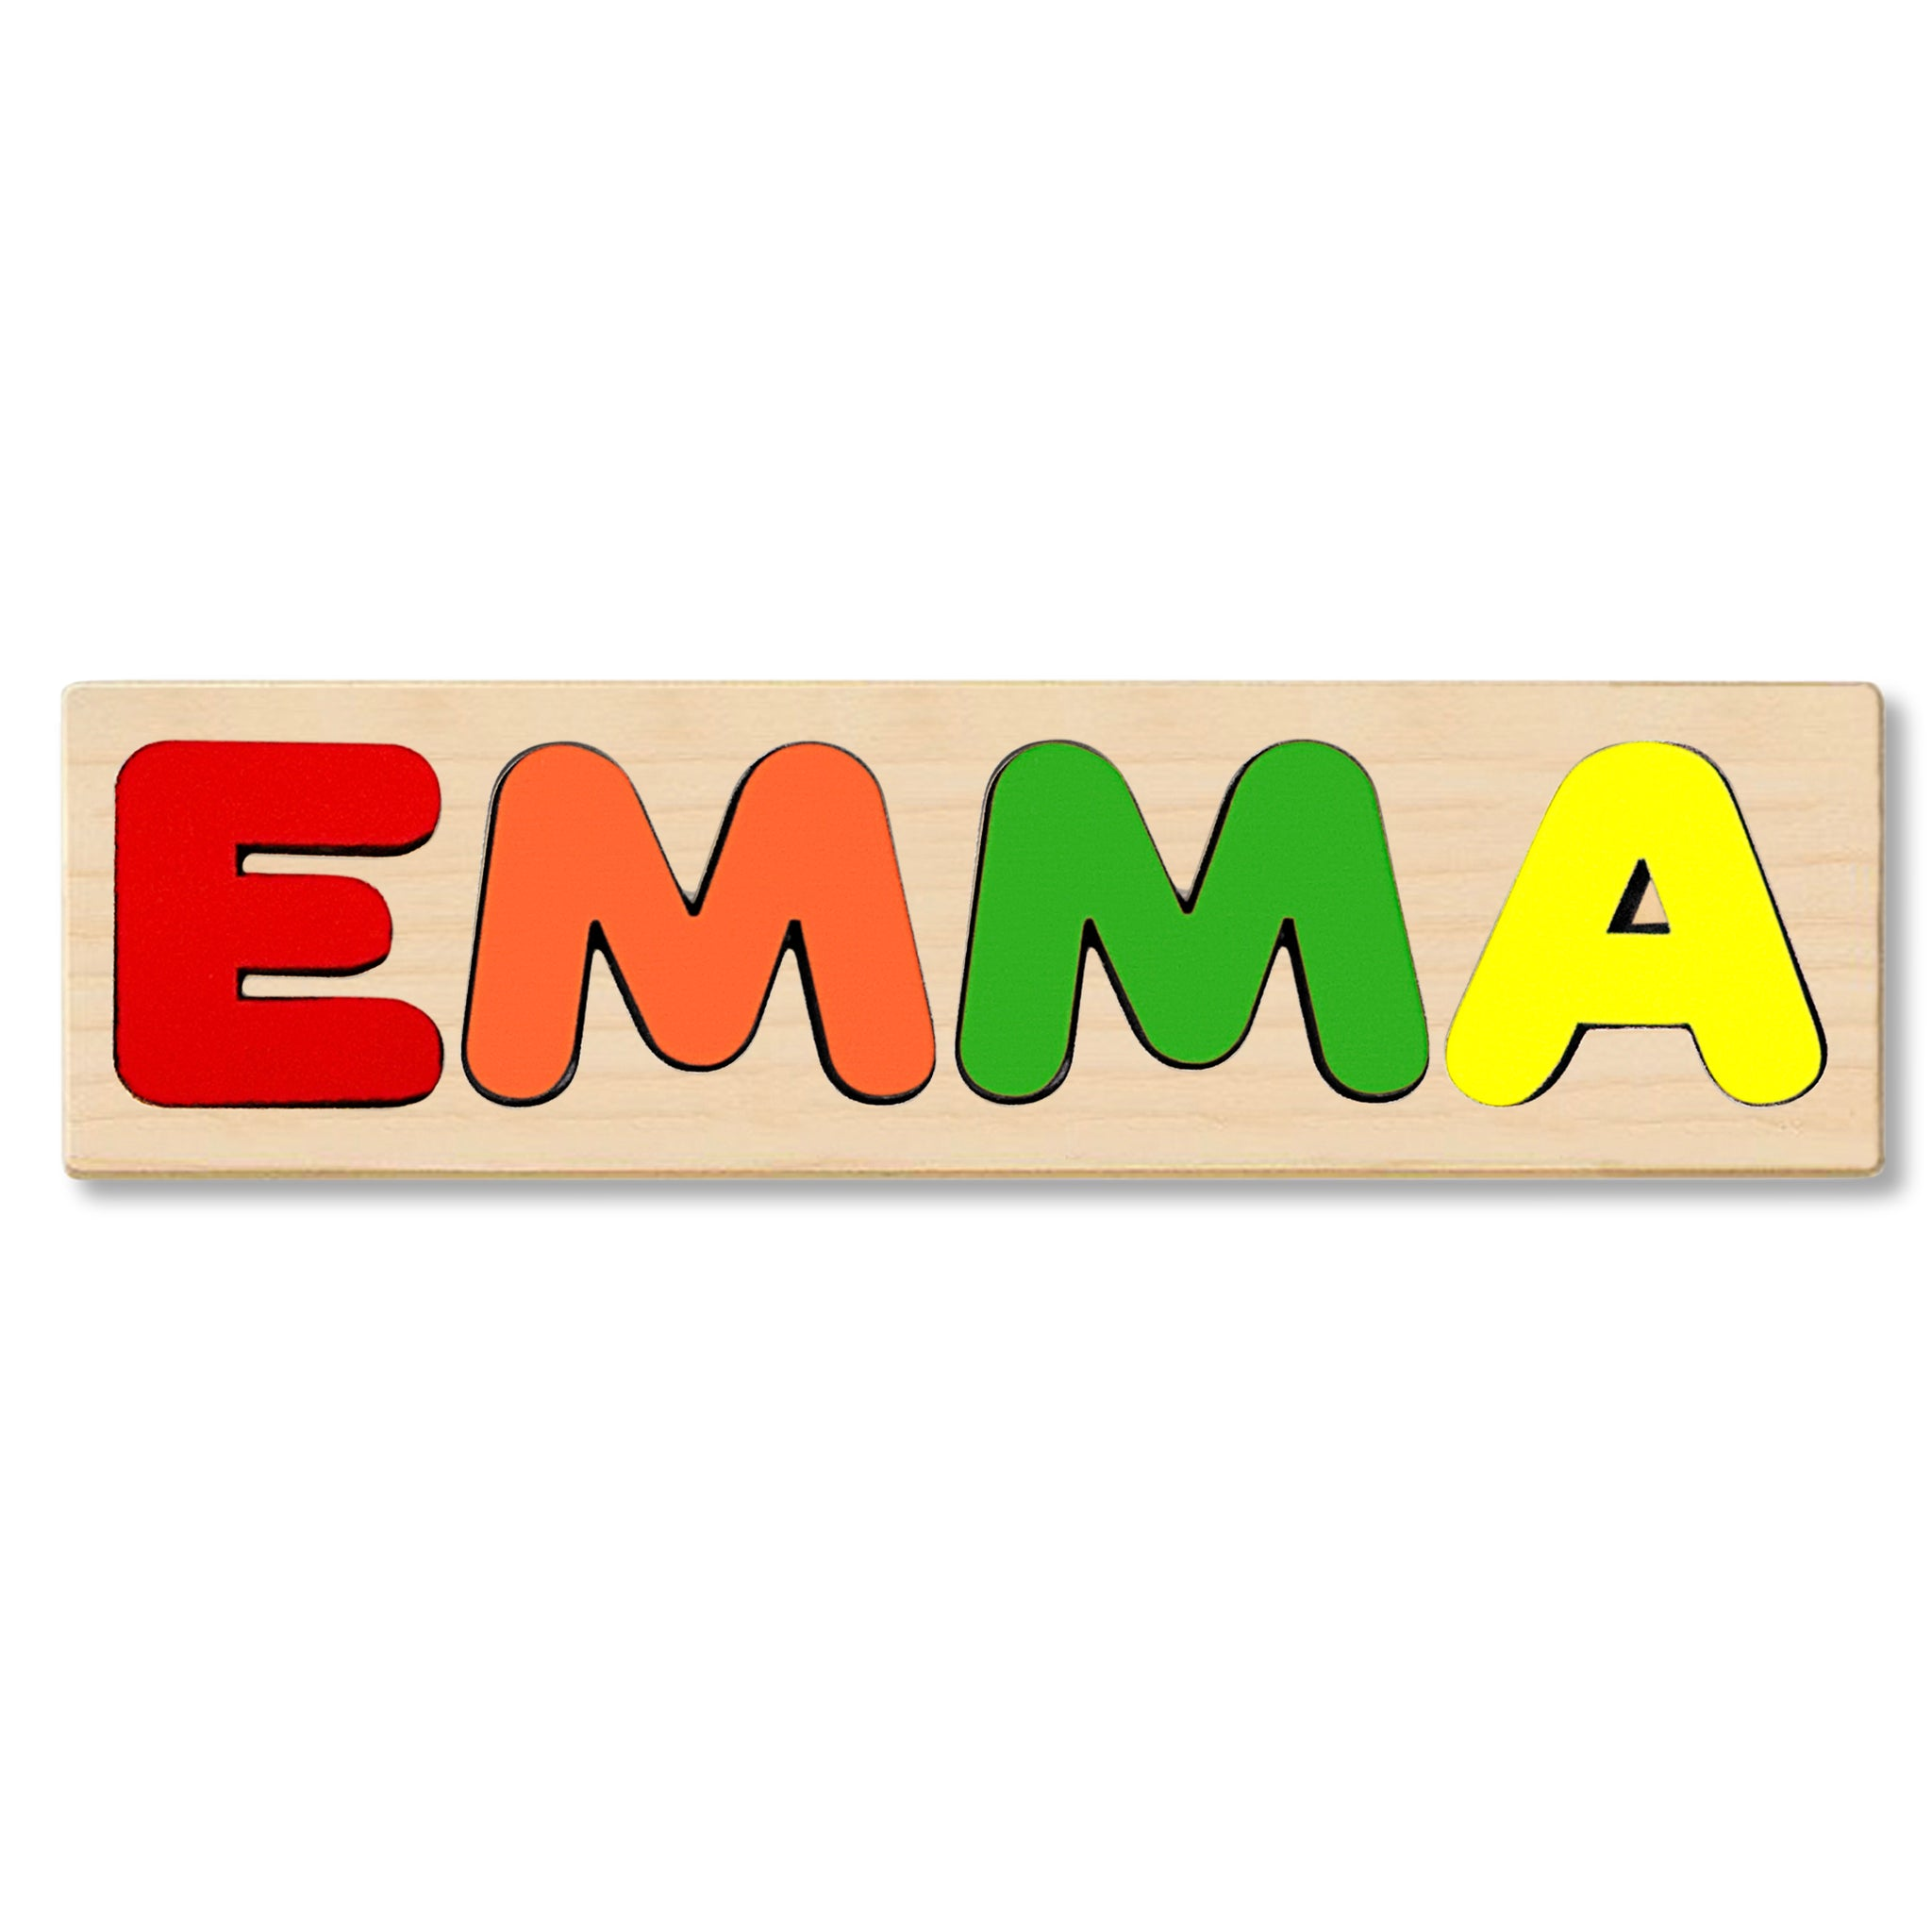 Wooden Personalized Name Puzzle - Any Name Or First & Last Name Choose up to 12 Letters No Extra Cost - EMMA